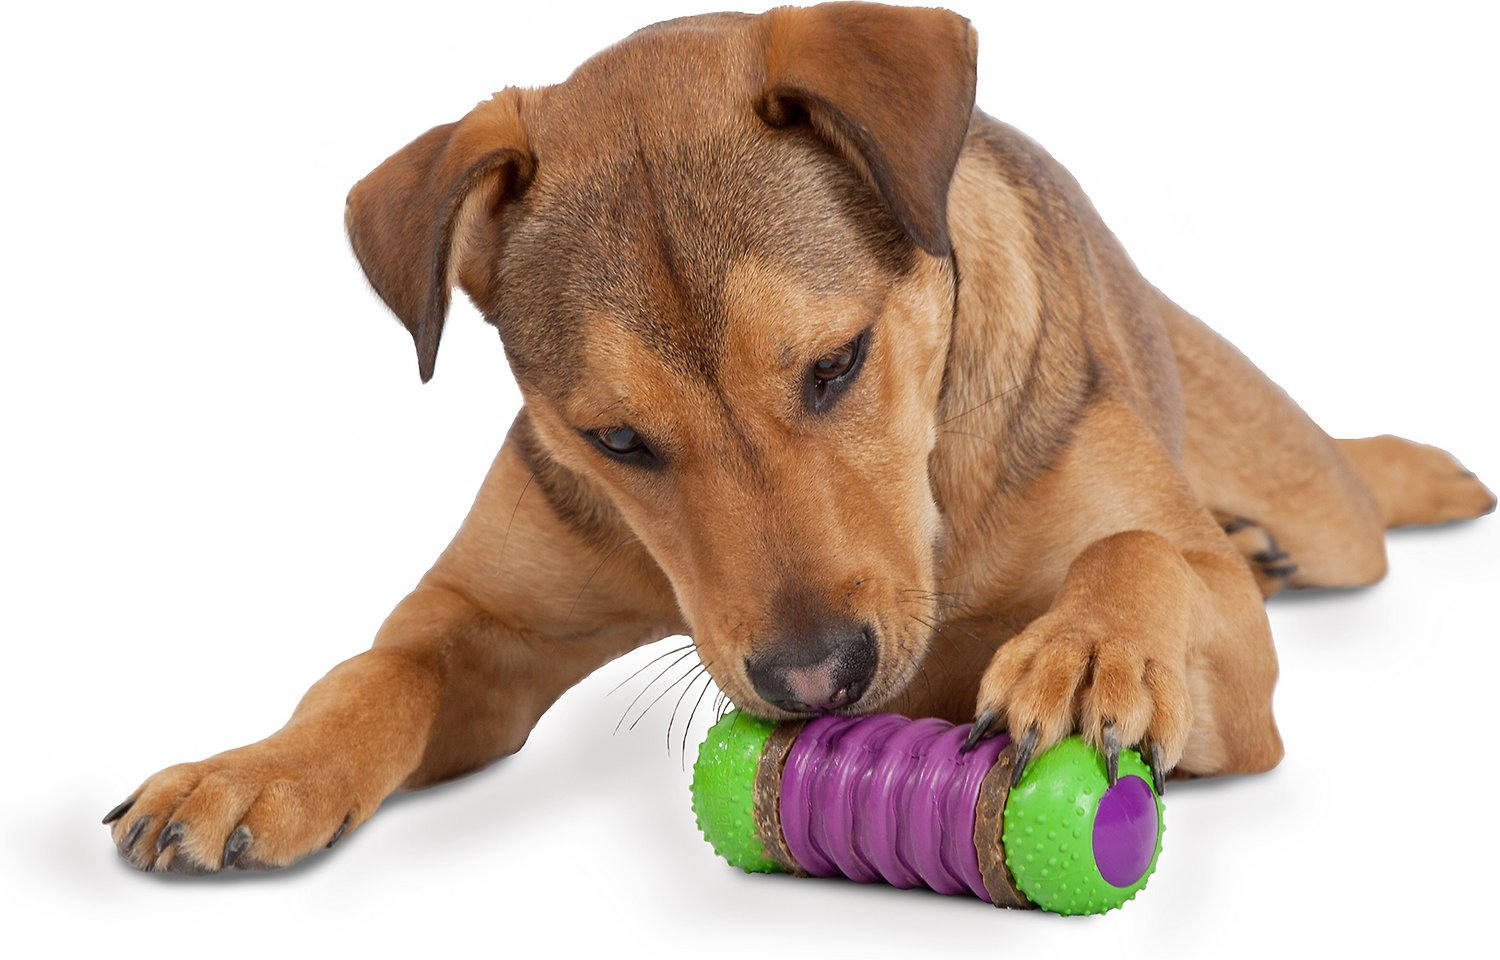 Treat Dog Toy - Signs of Stress in Dogs - MyPamperedPup